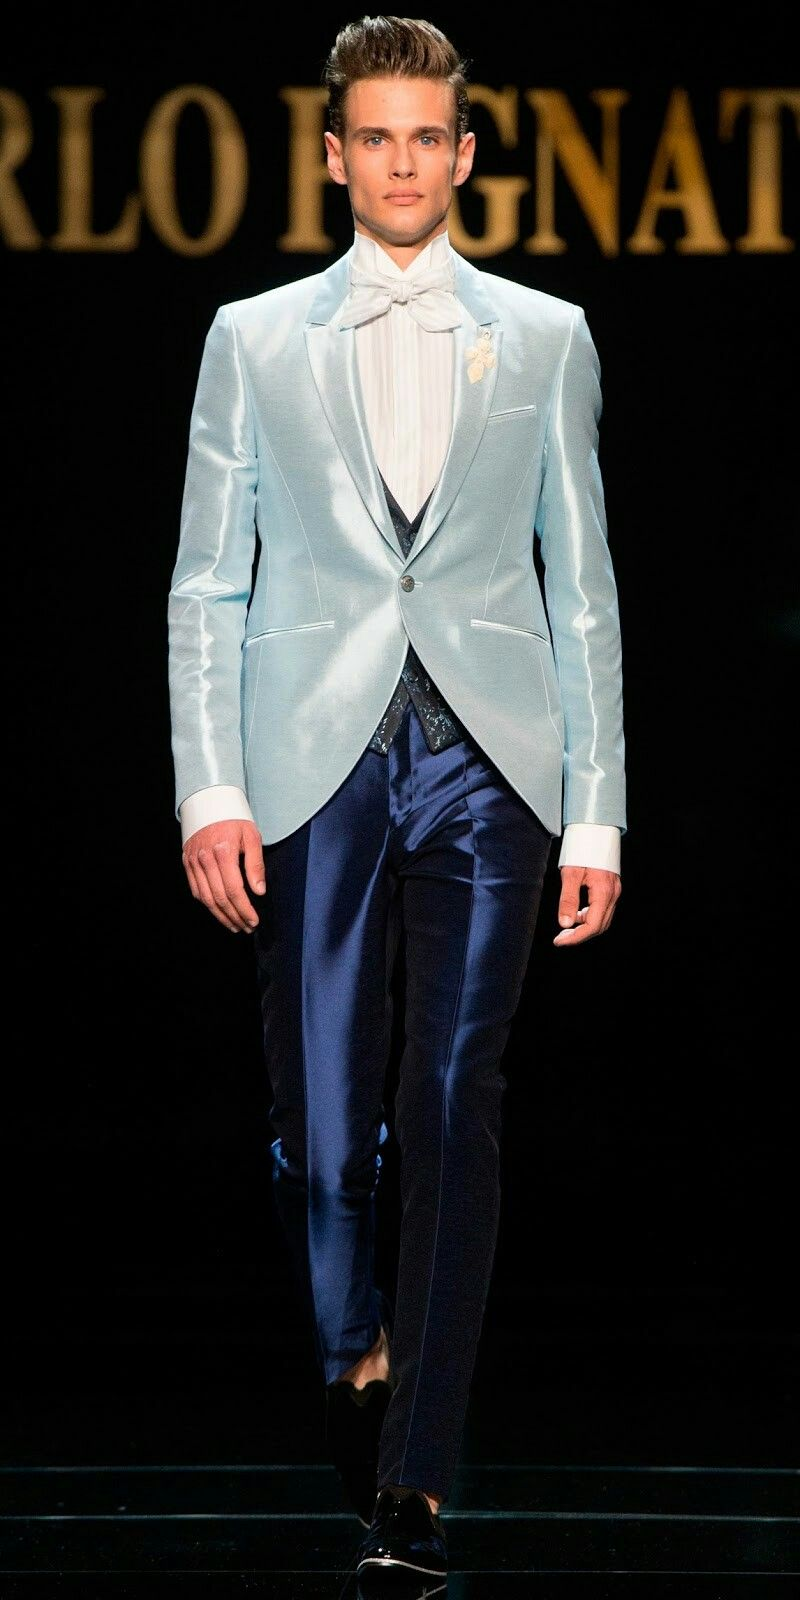 Pin by Kyo520 on Suits satin/shiny   Pinterest